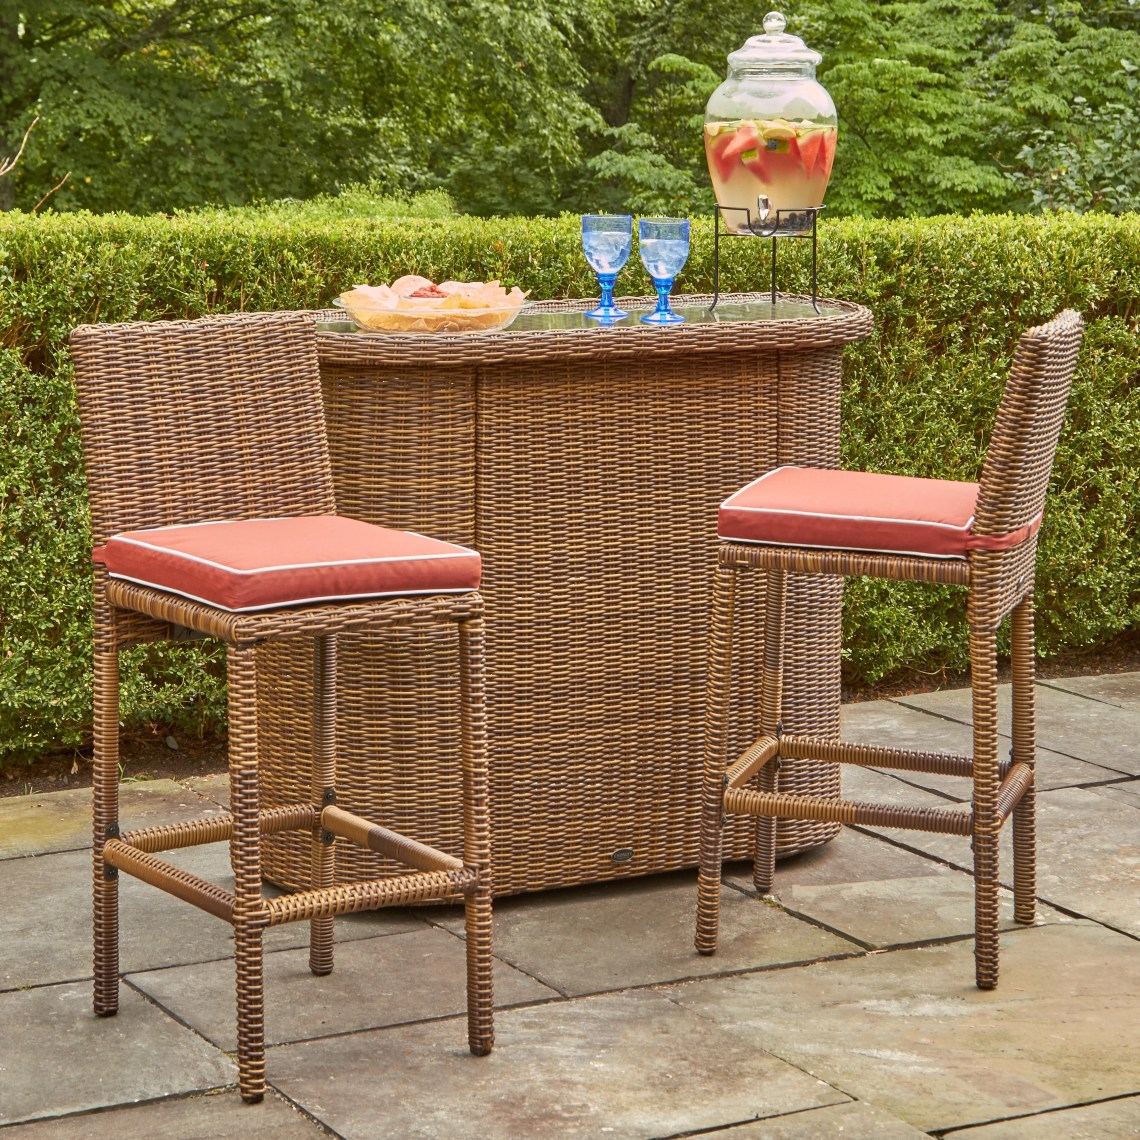 Shop Patio Furniture By Material